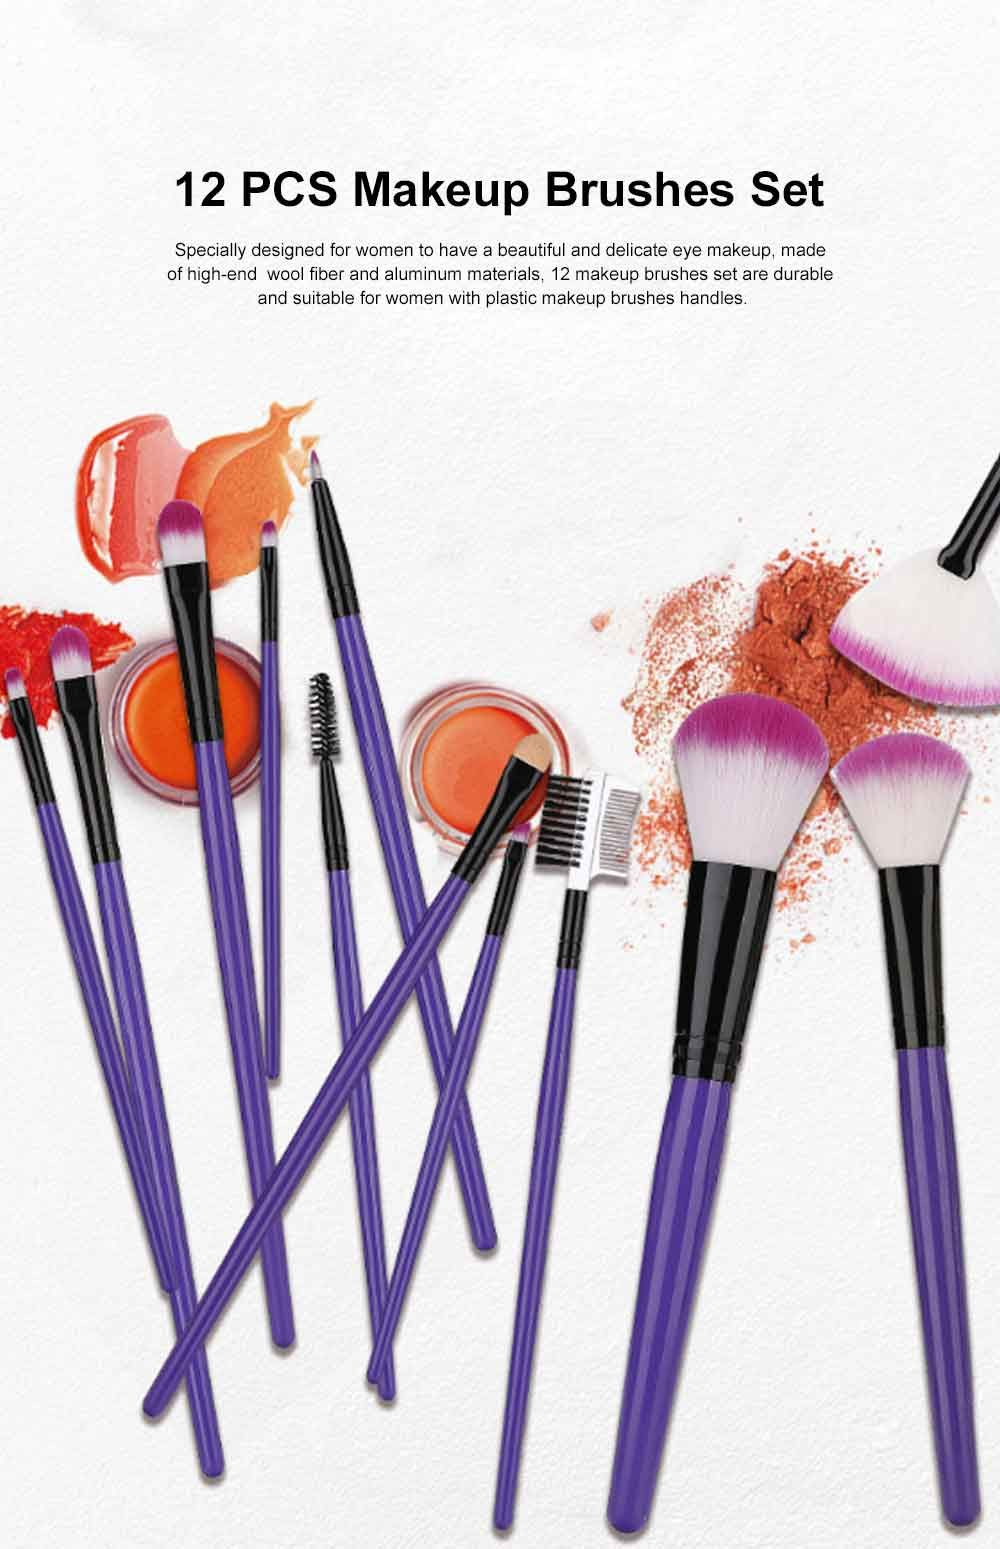 12pcs Makeup Brushes Set Makeup Brushes For Eye Shadow Concealer Eyeliner Brow Blending Brush Cosmetic Tool Makeup Brush Set Cosmetic Tools Makeup Brushes